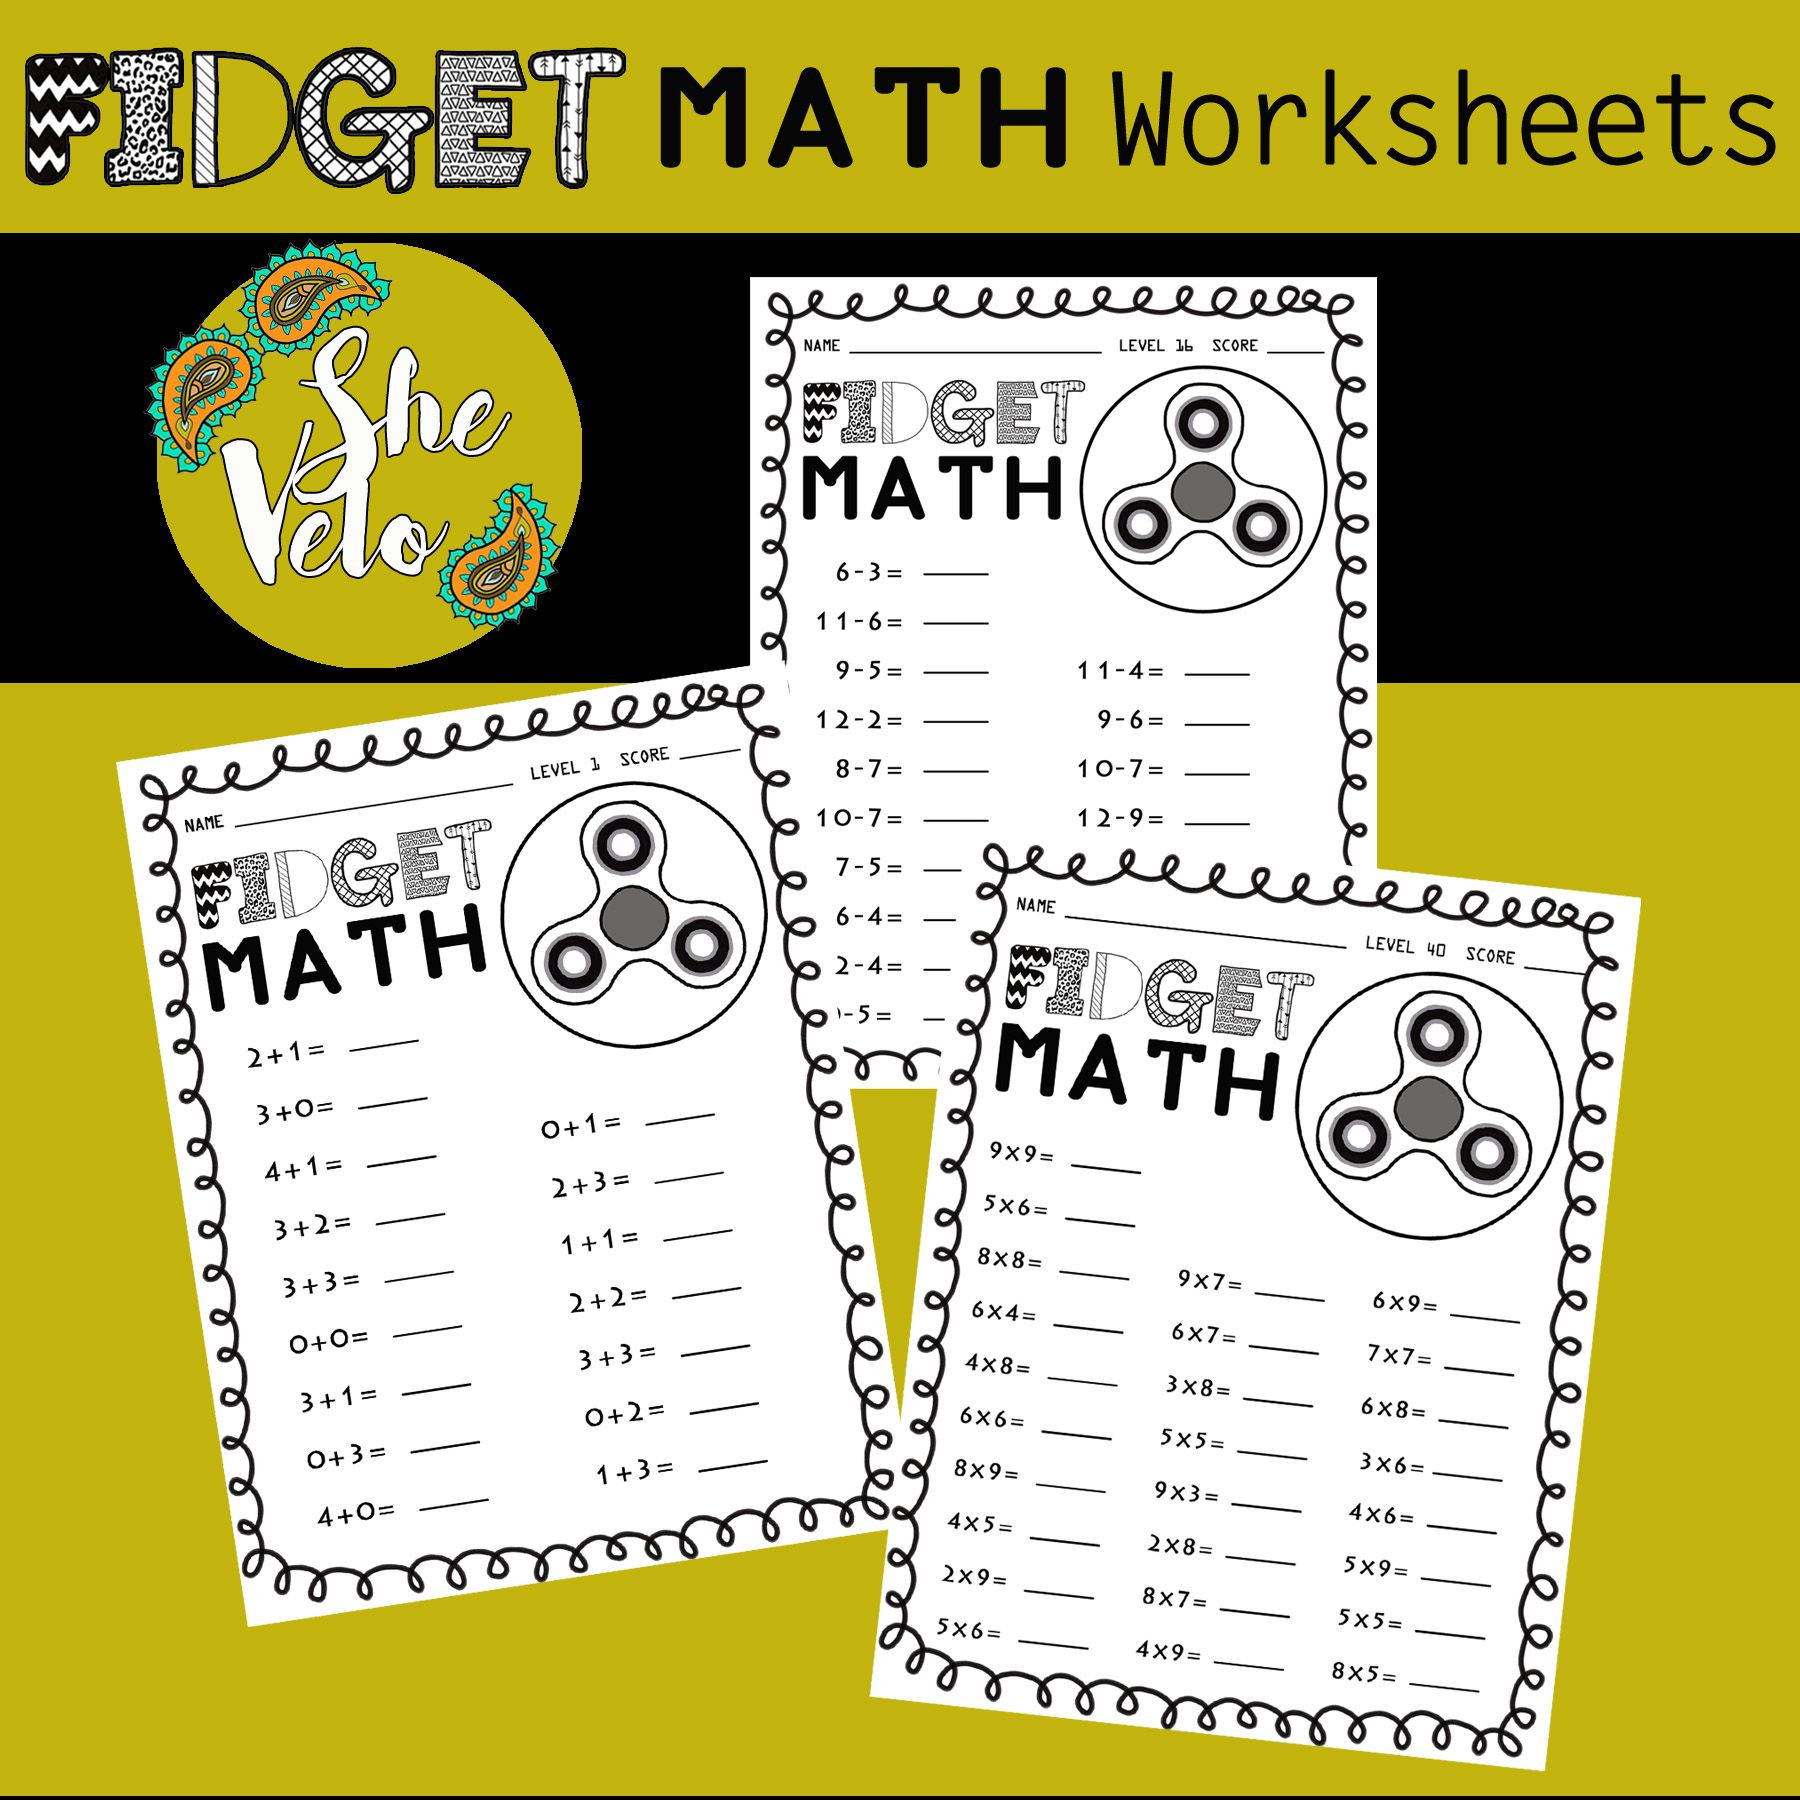 Fidget Spinner Math Worksheet Fid Spinner Worksheet